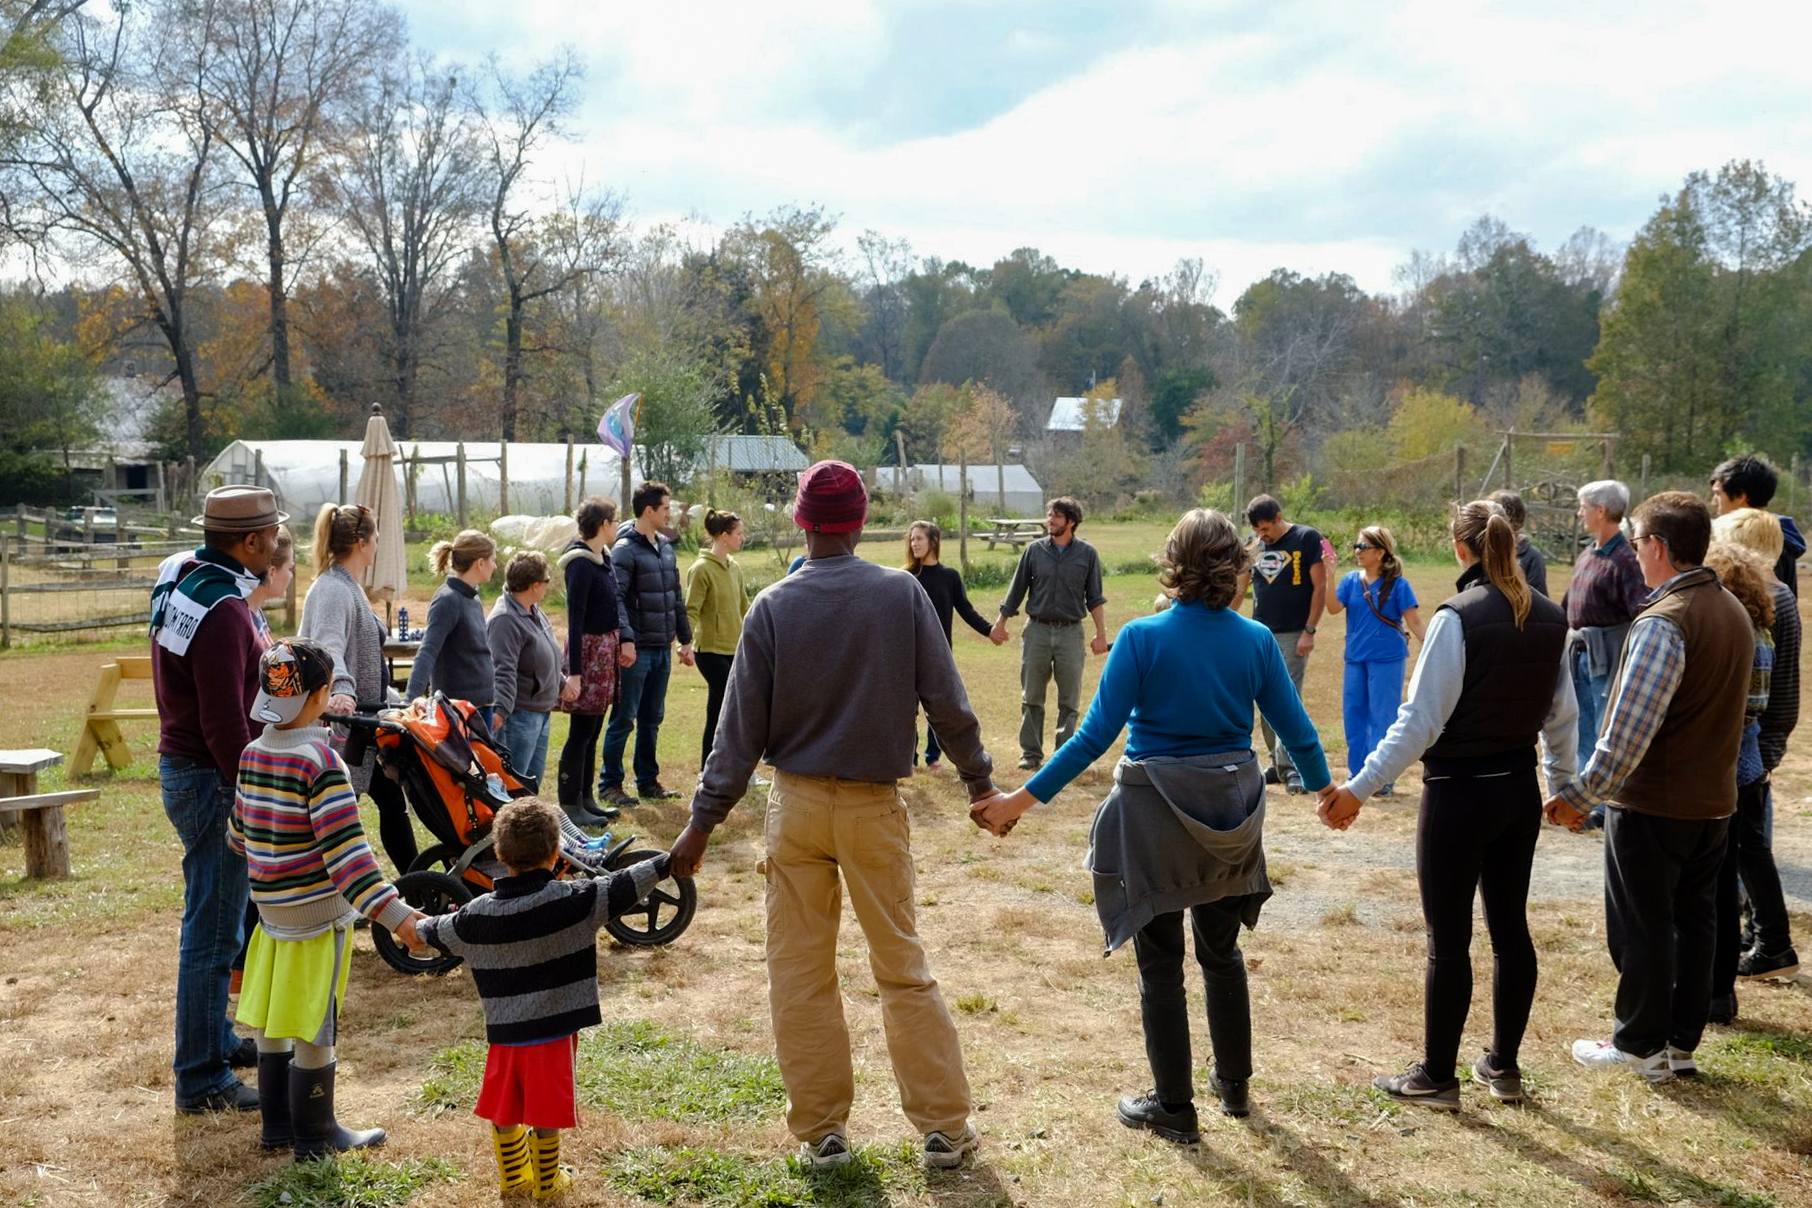 20170124_farm lunch_circle_multicultural_the eco-institute_gratitude_children_unspecified-11.jpg